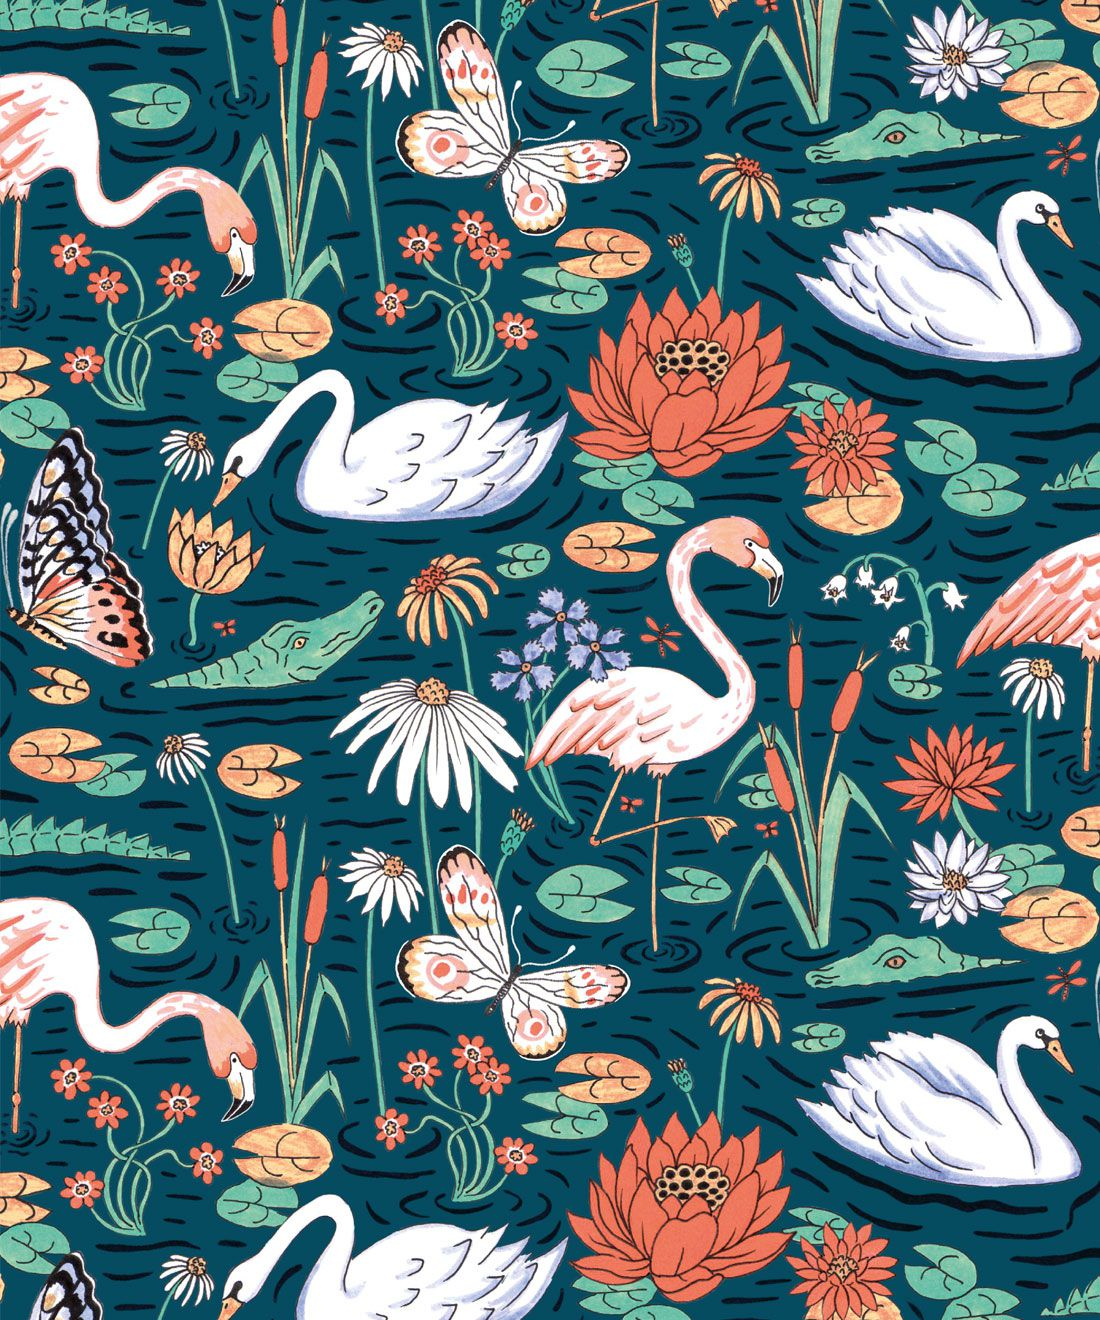 Pond Pattern Wallpaper featuring alligators, swans, flamingos and lily pads swatch